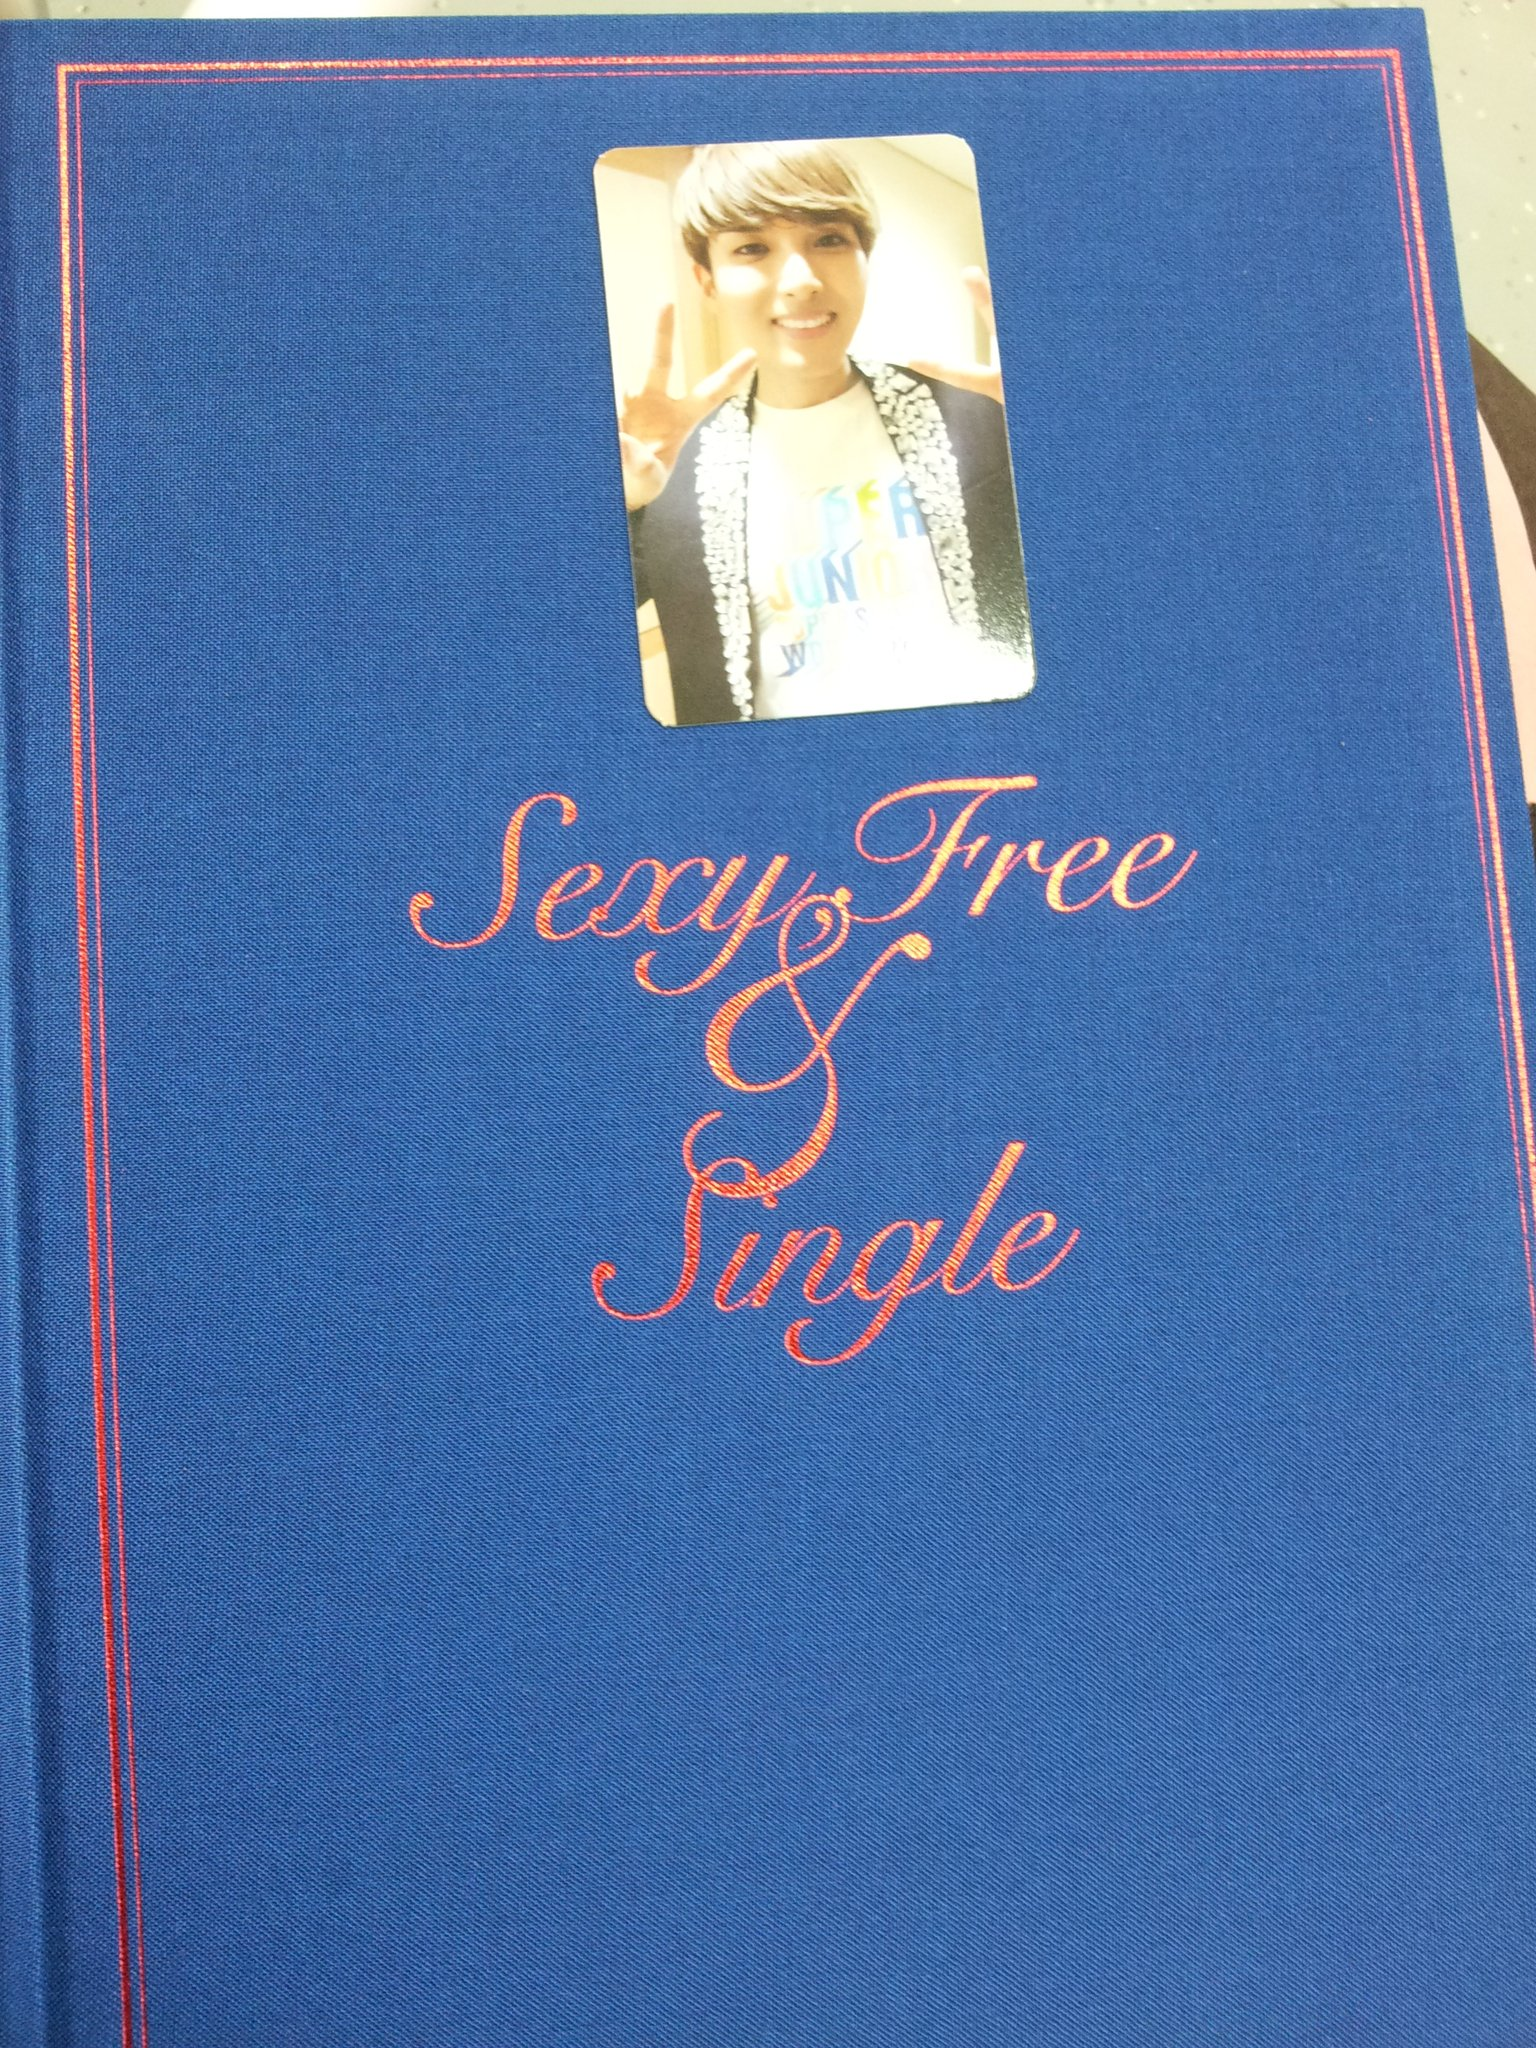 [PIC] 'Sexy, Free & Single' Ryeowook Photocard! http://t.co/1kI6u0KF cr: 712jay